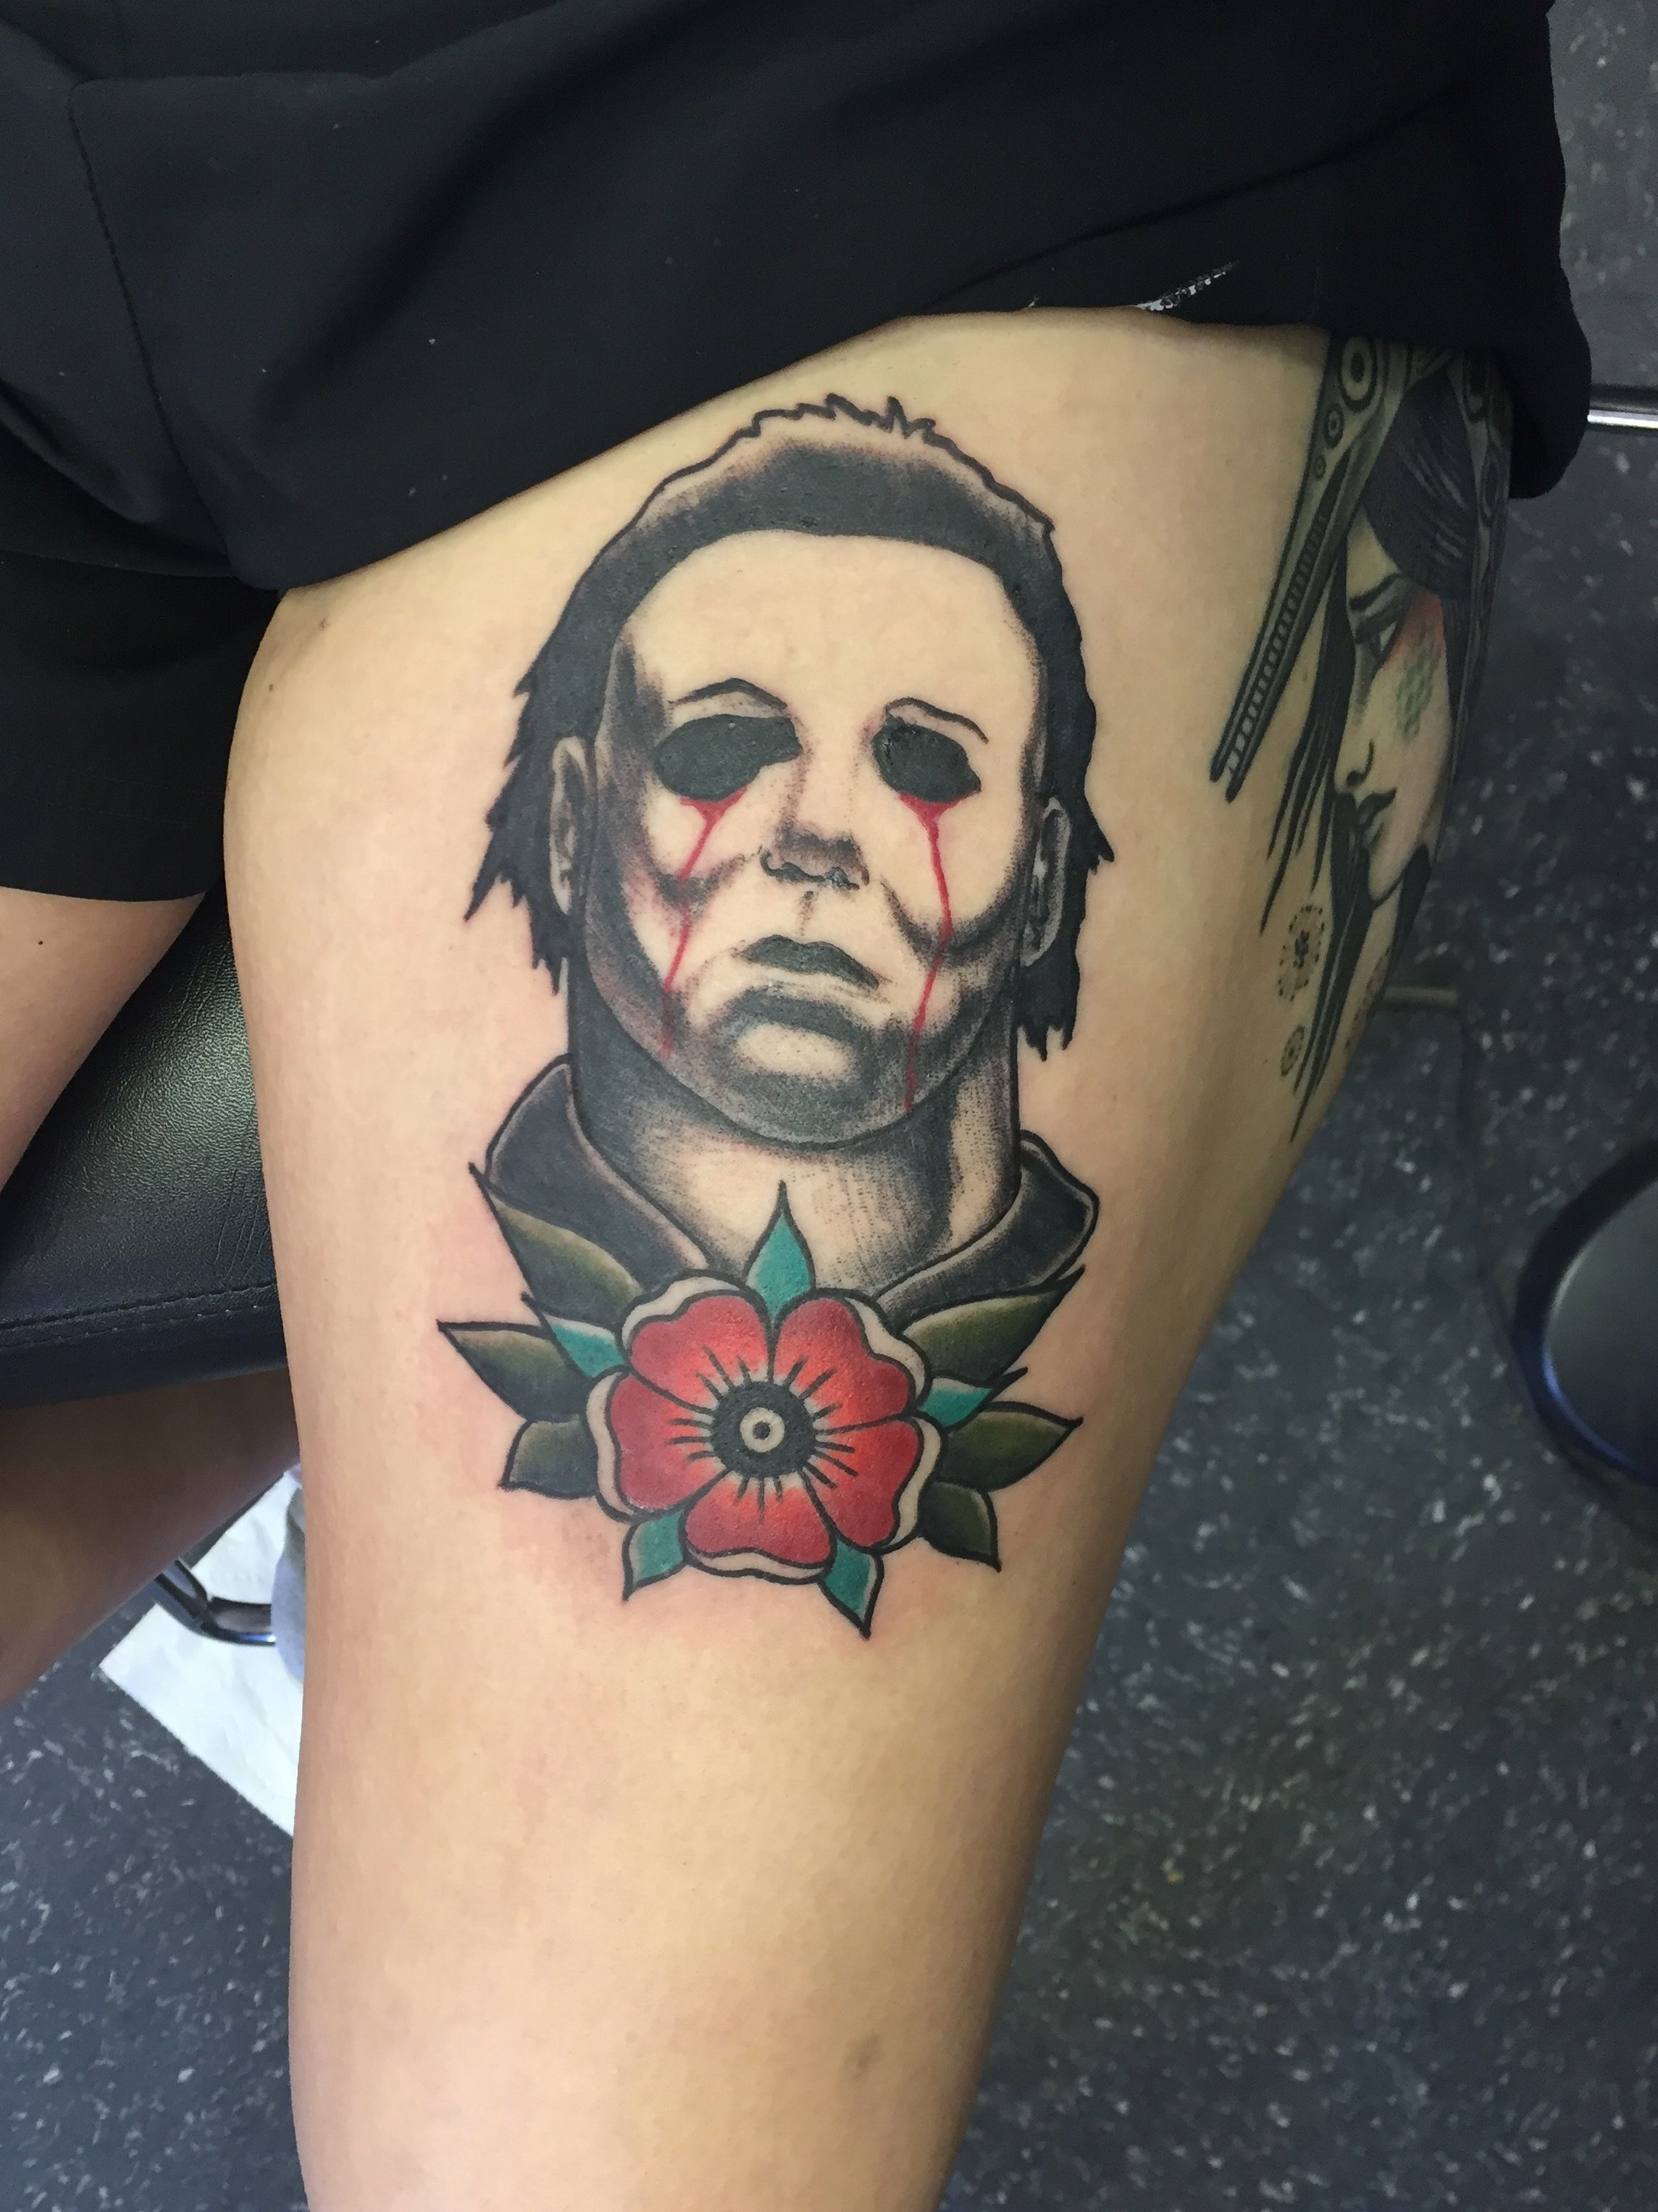 Neotraditional michael myers tattoo from aaa tattoo in for Tattoo shops lafayette louisiana